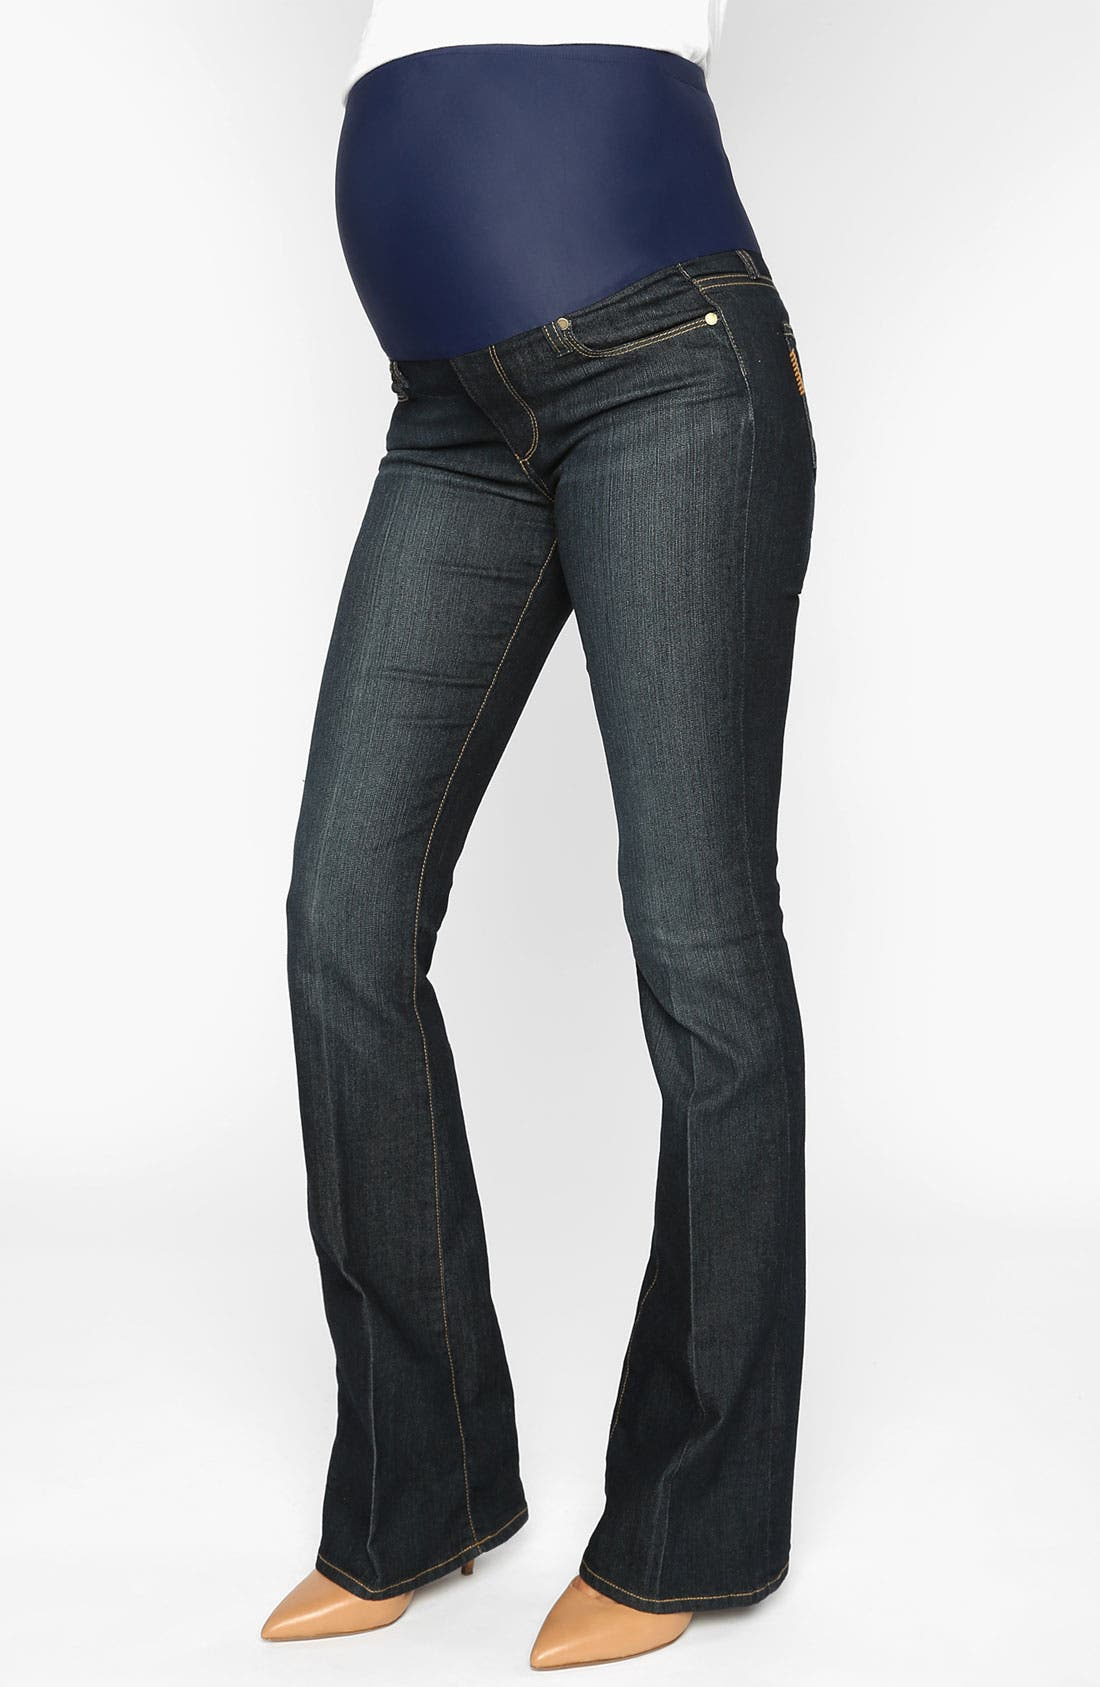 Main Image - Paige Denim 'Skyline' Maternity Bootcut Jeans (Twilight)